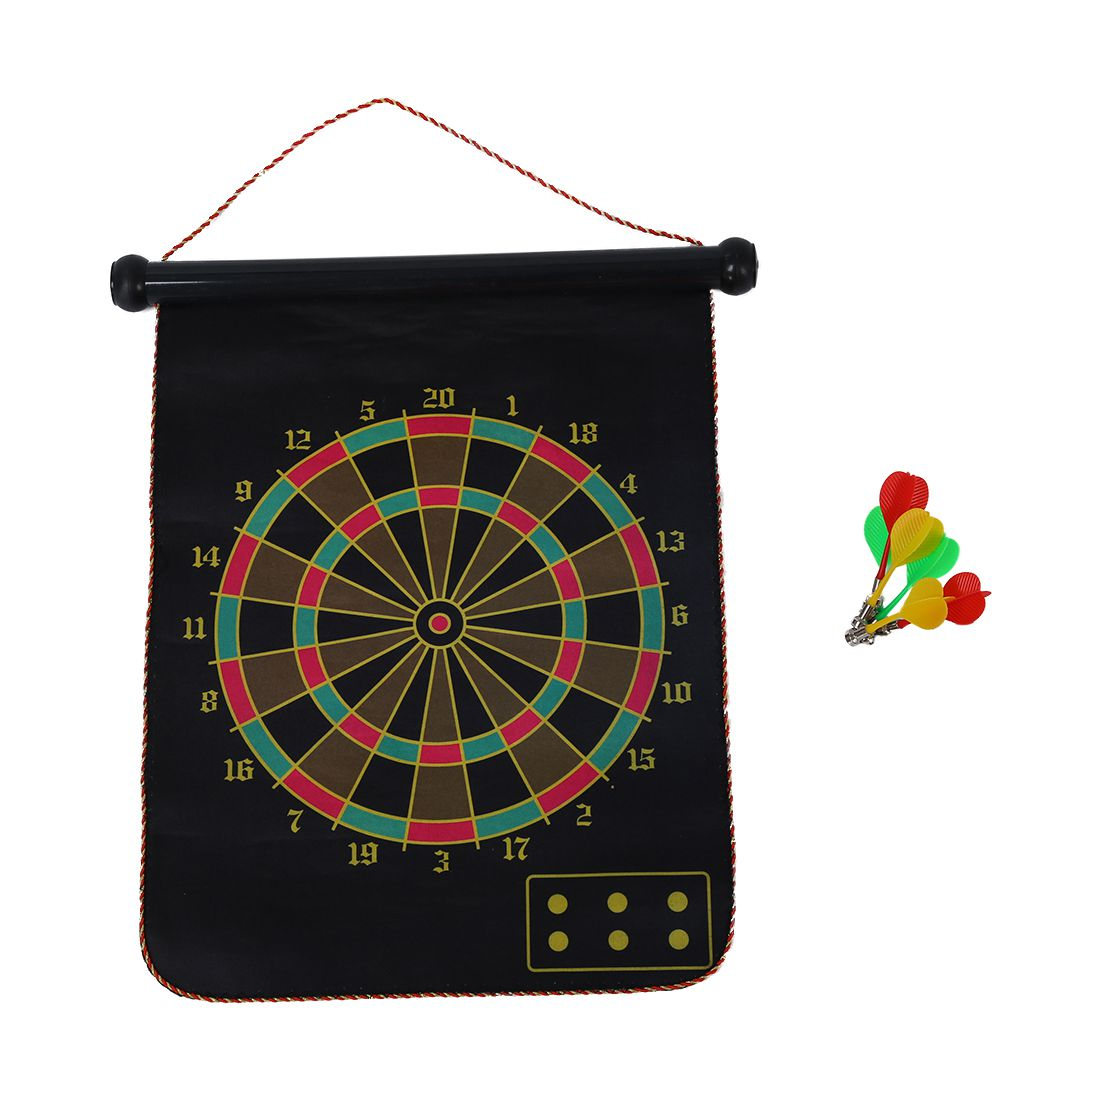 Target darts Double-sided magnetic suspended wiht 6 magnetic darts